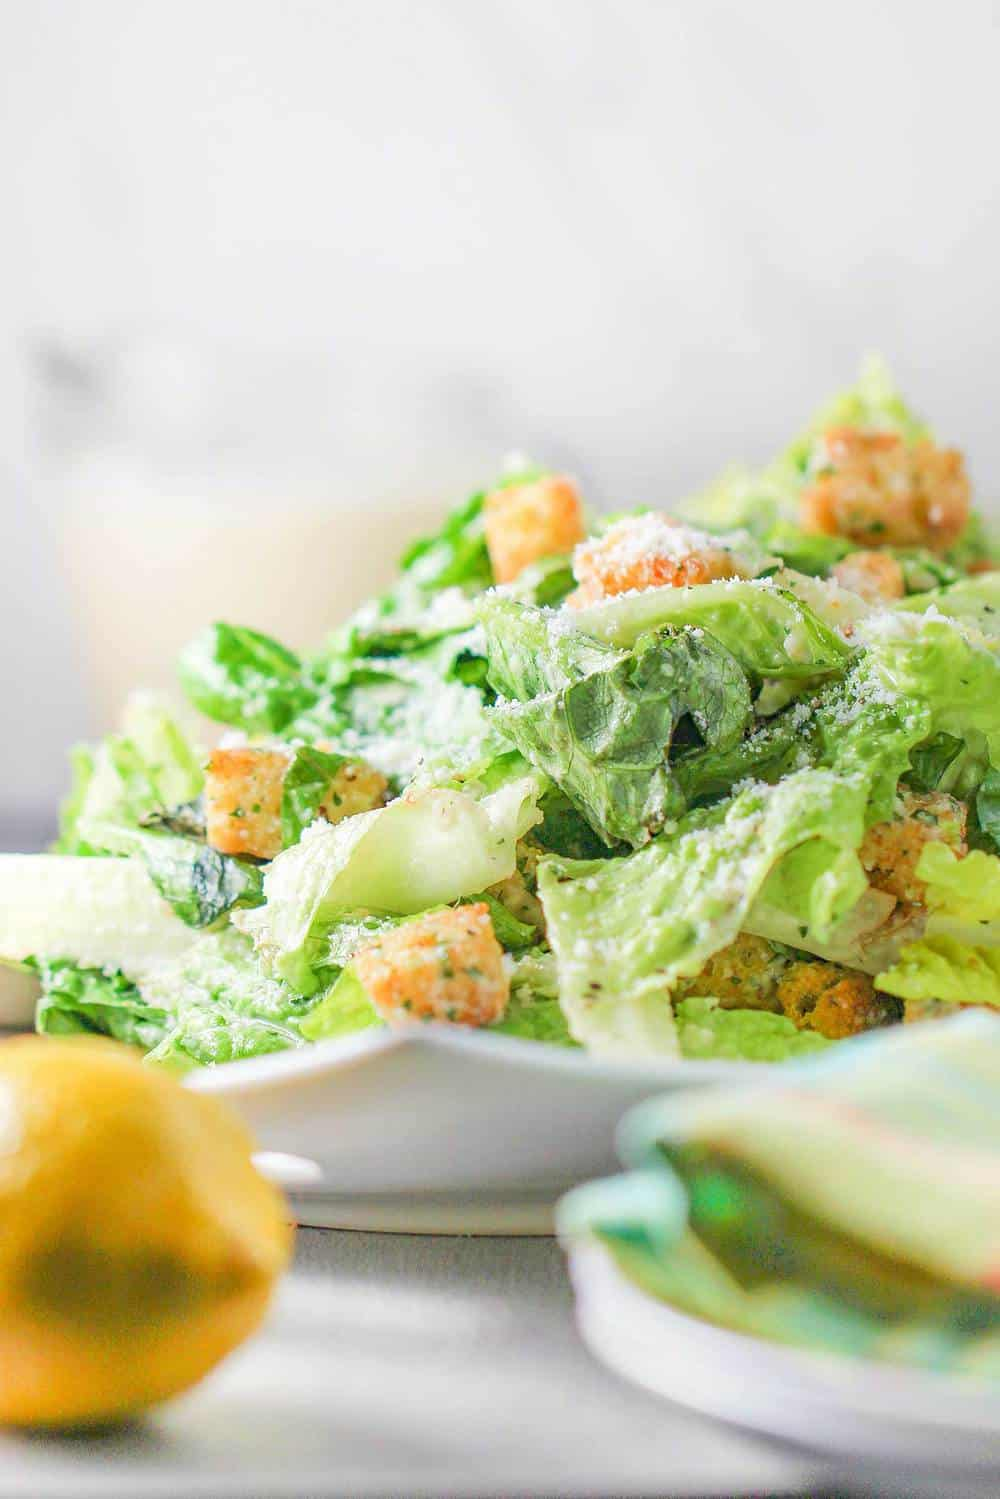 A white plate holding a classic Caesar salad with a lemon nearby.